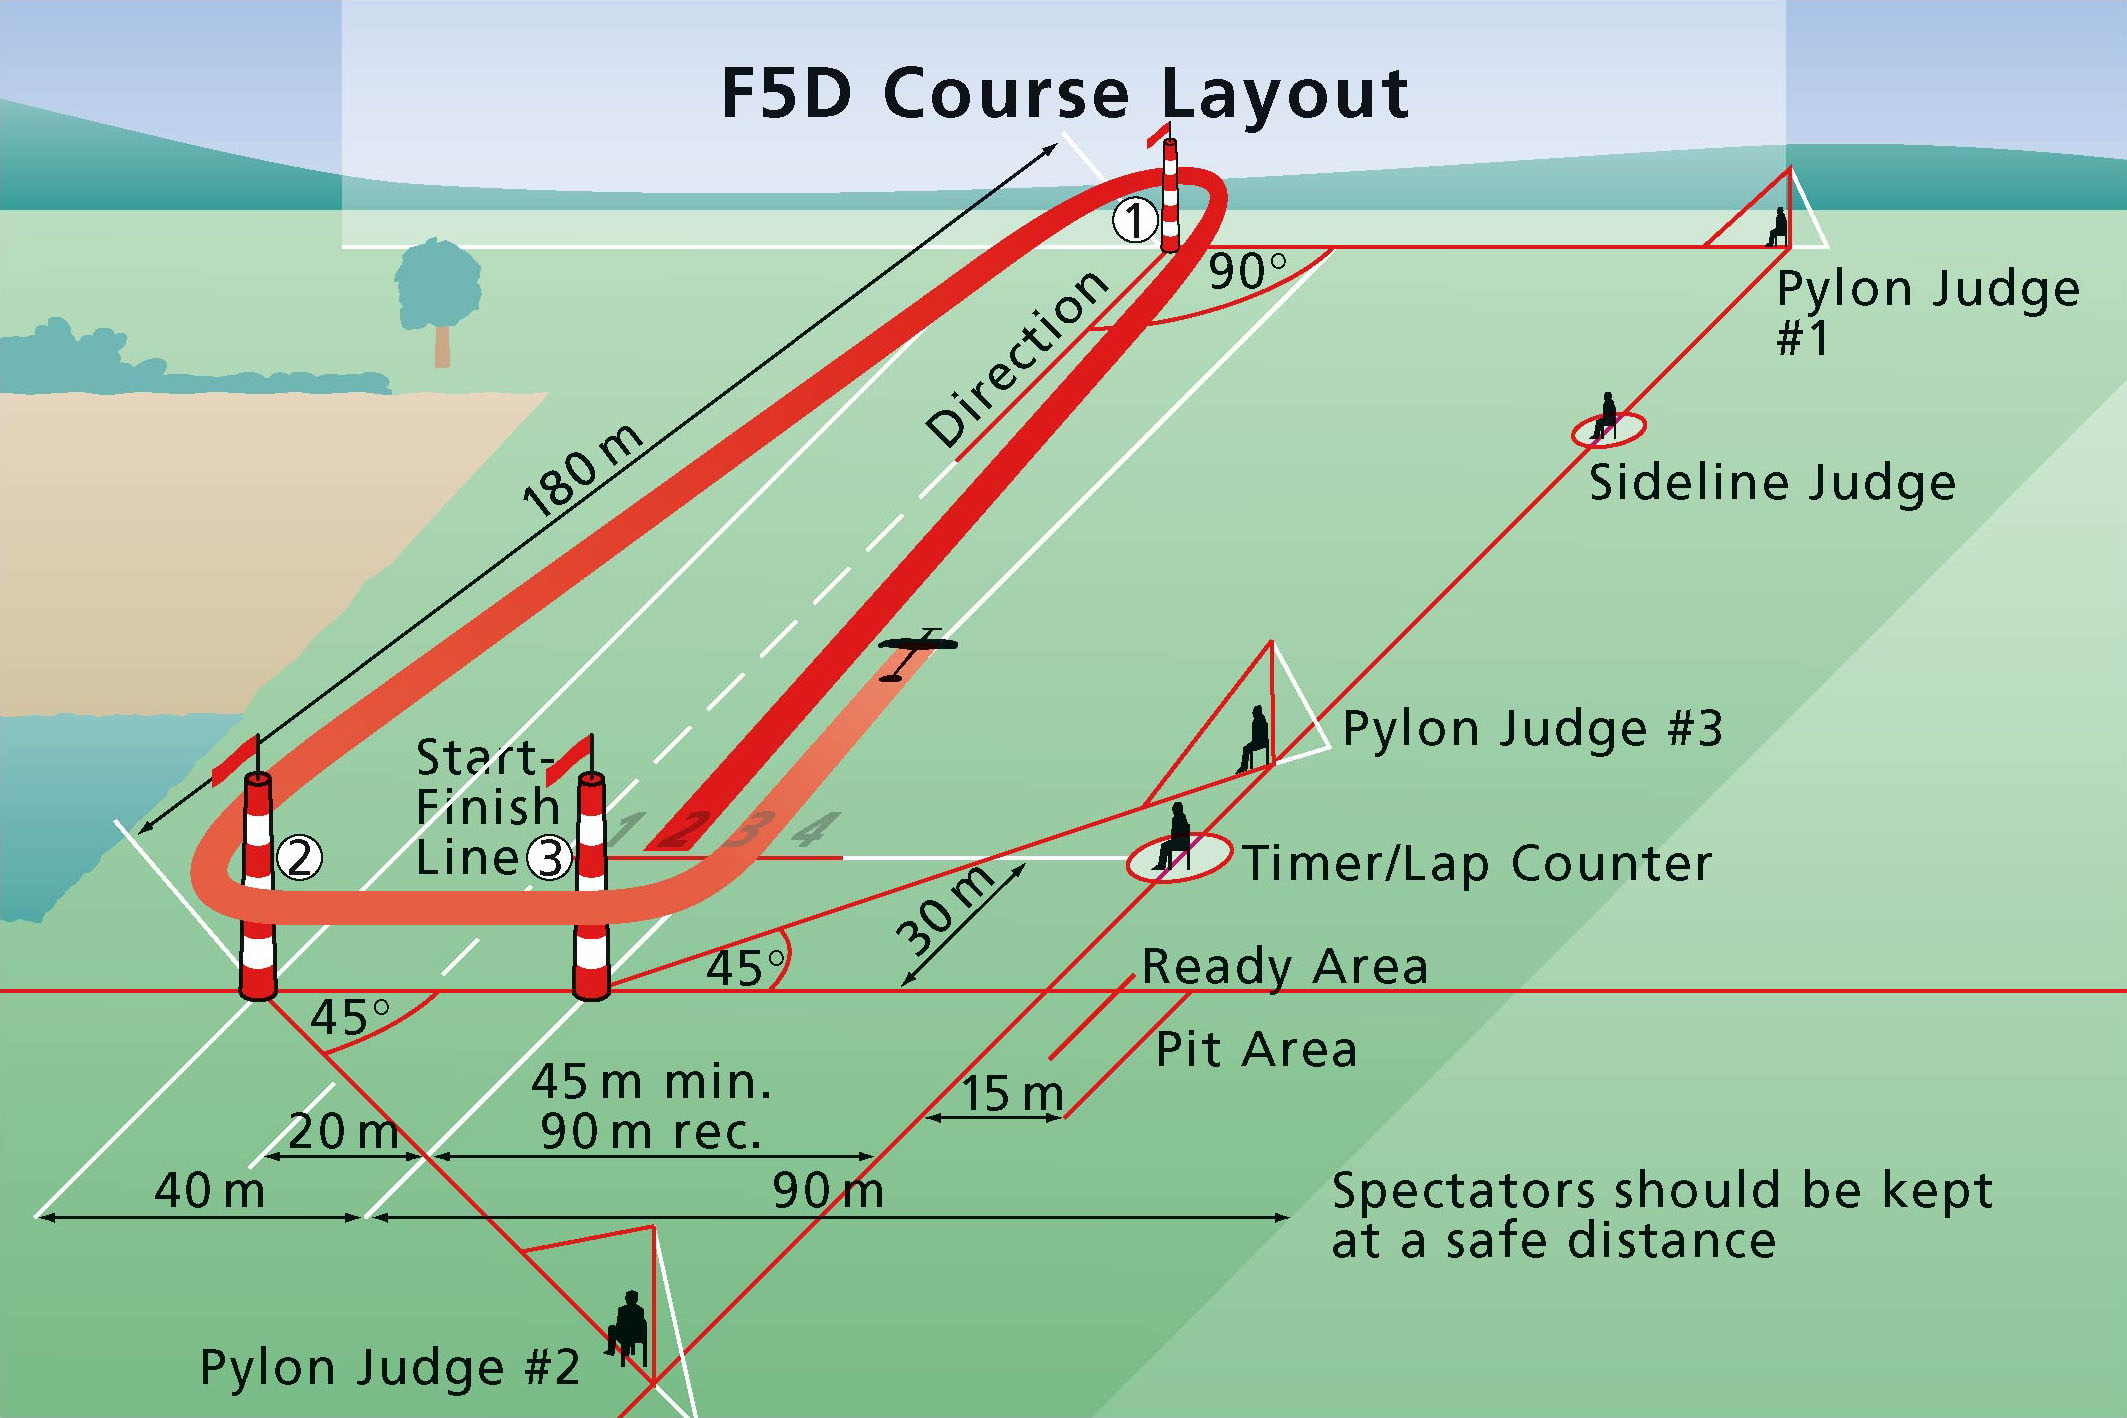 f5d_course_layout_-_2011